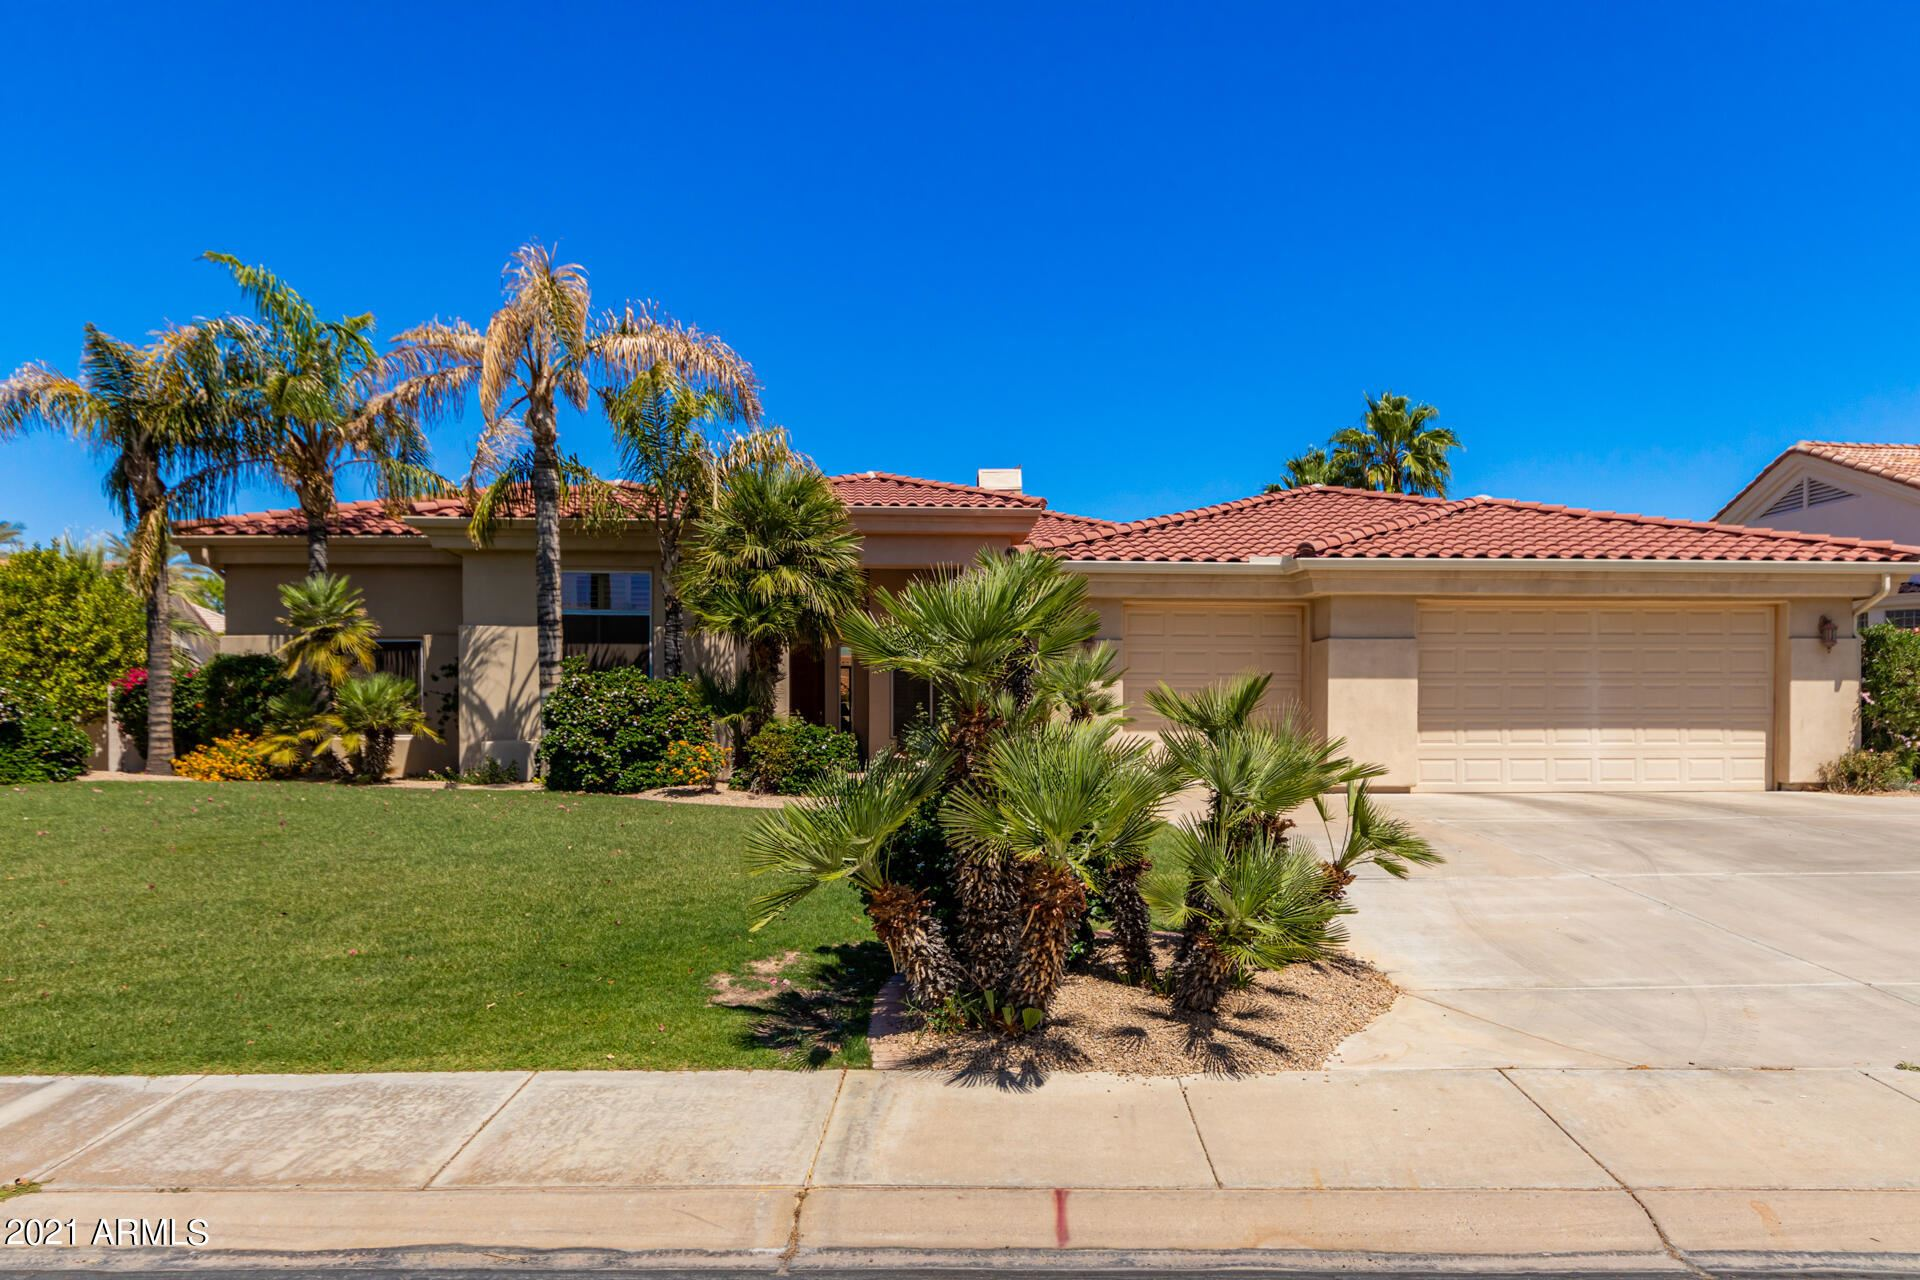 Photo of 14222 W GREENTREE Drive S, Litchfield Park, AZ 85340 (MLS # 6233213)